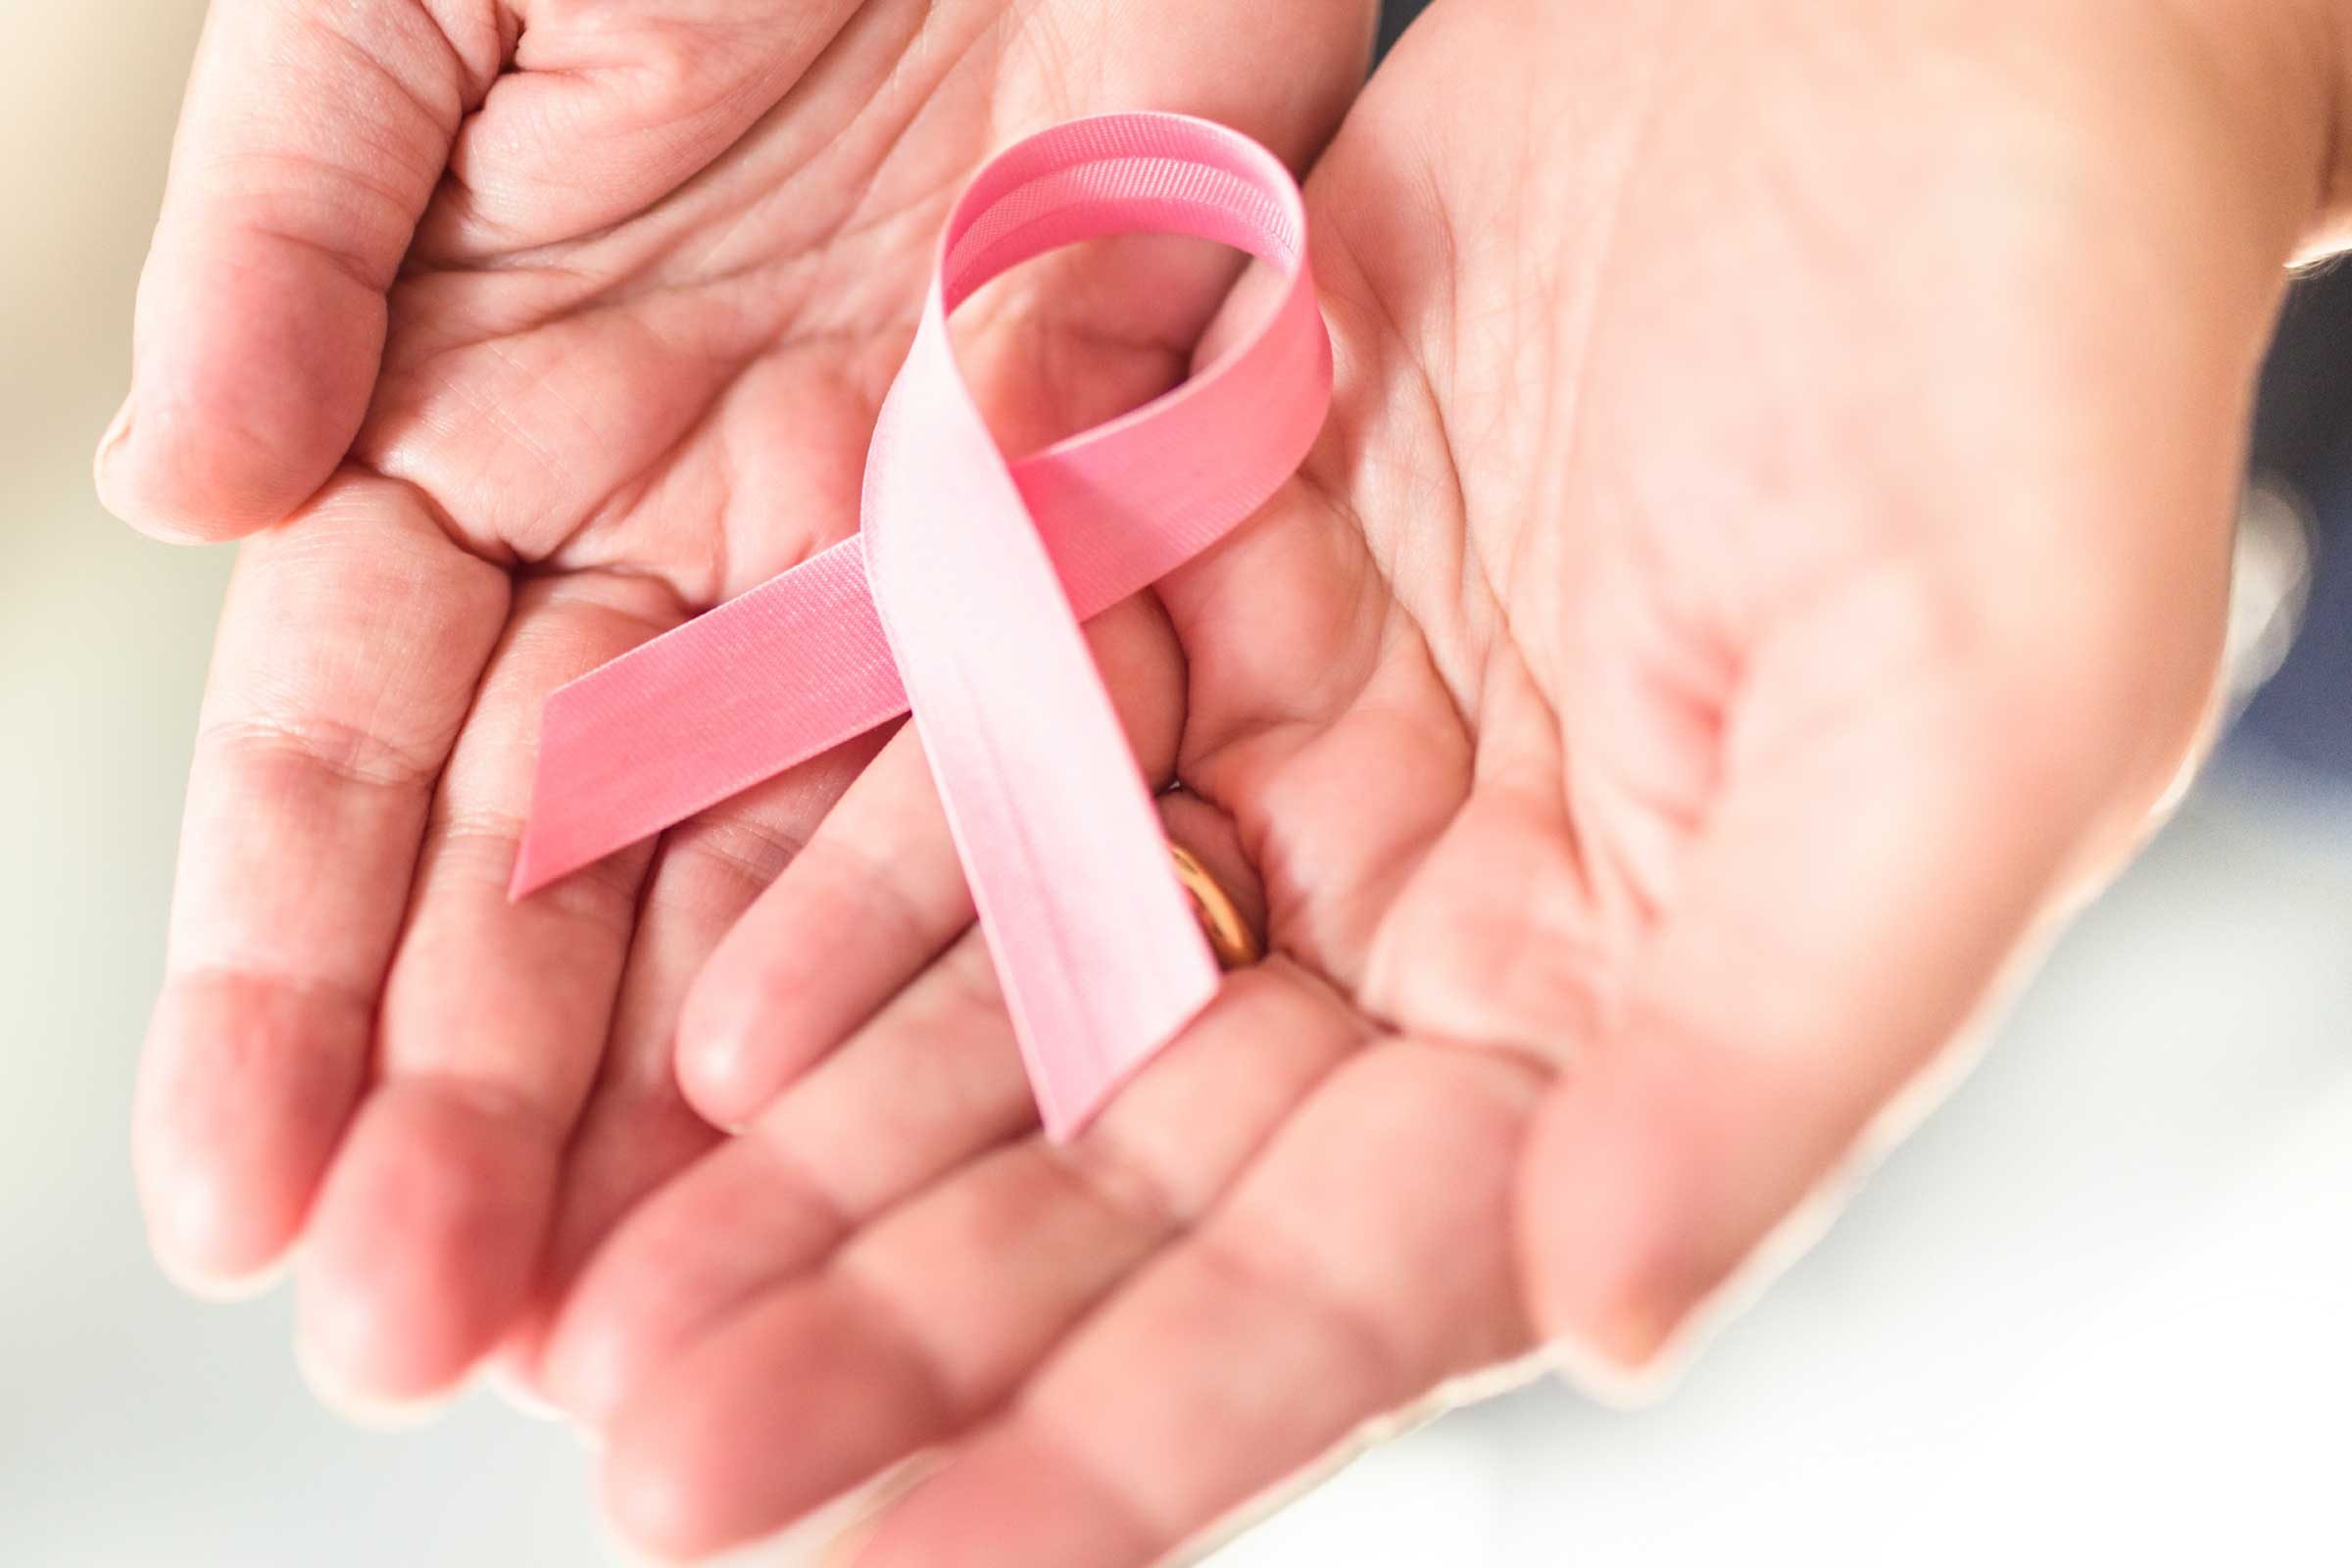 health myths gynecologists hear | hands holding pink breast cancer ribbon